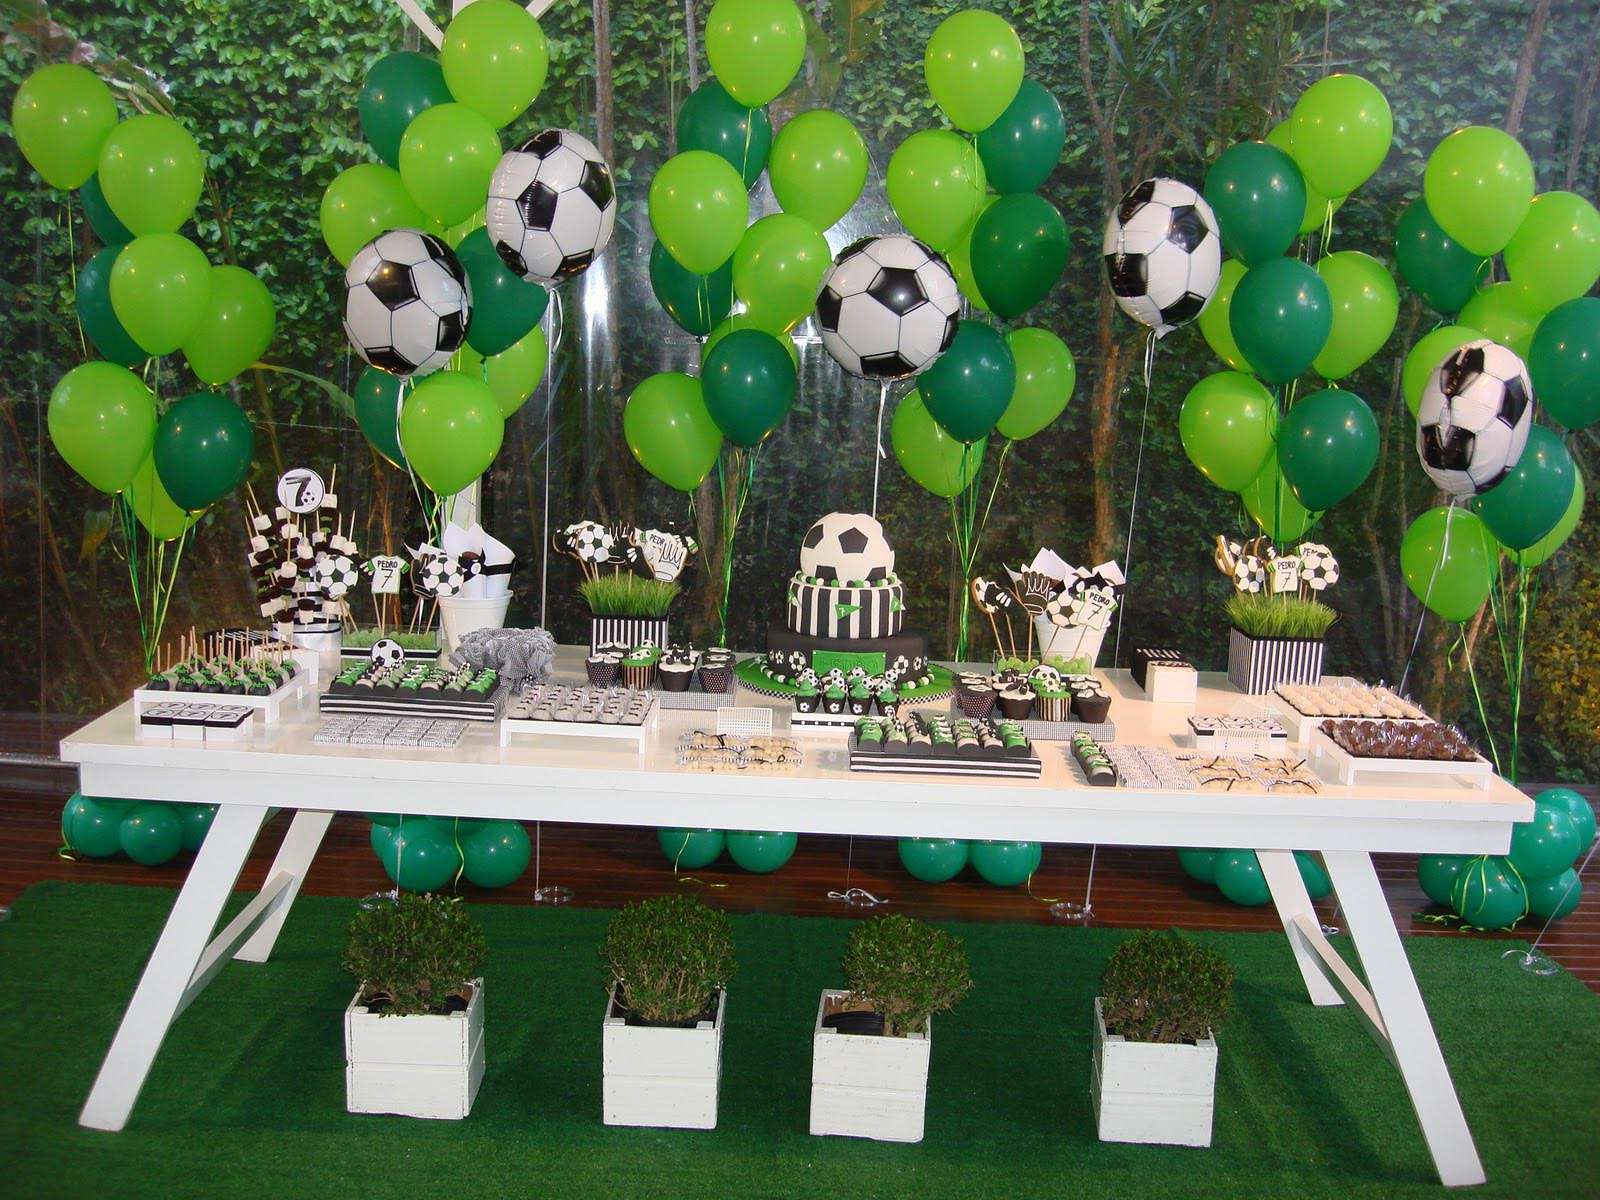 Soccer Birthday Party Favor Ideas